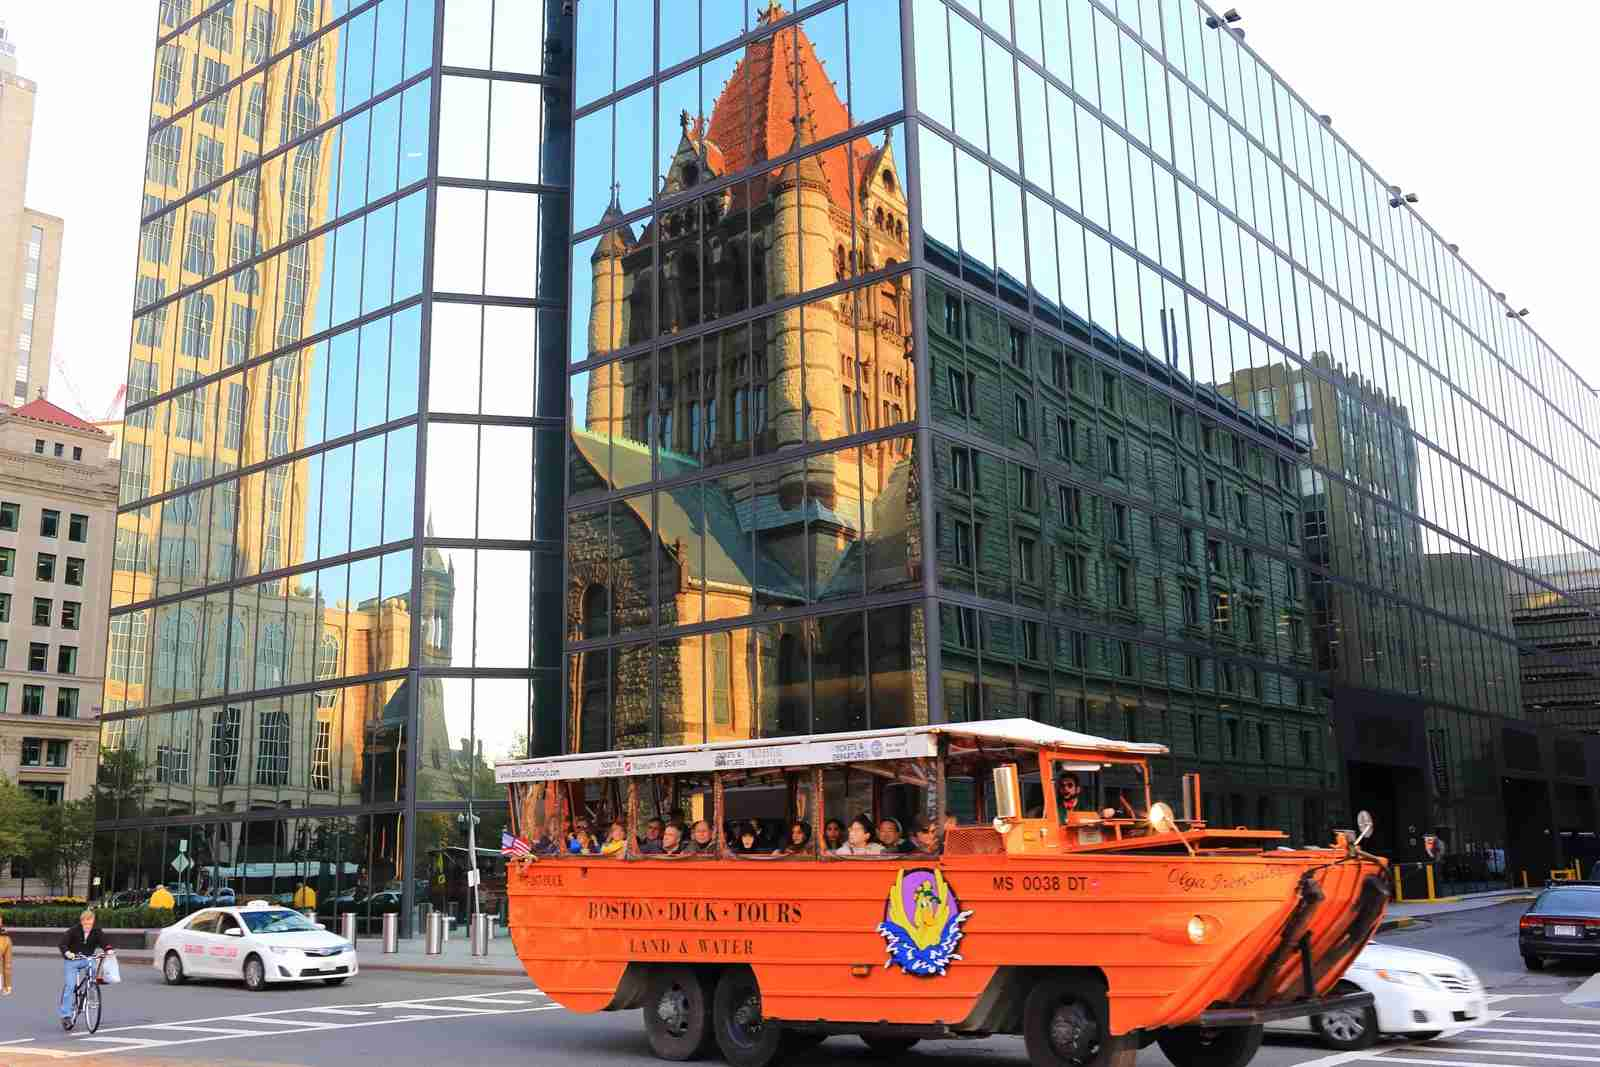 The Boston Duck Tours. (Photo by shunyufan / Getty Images)